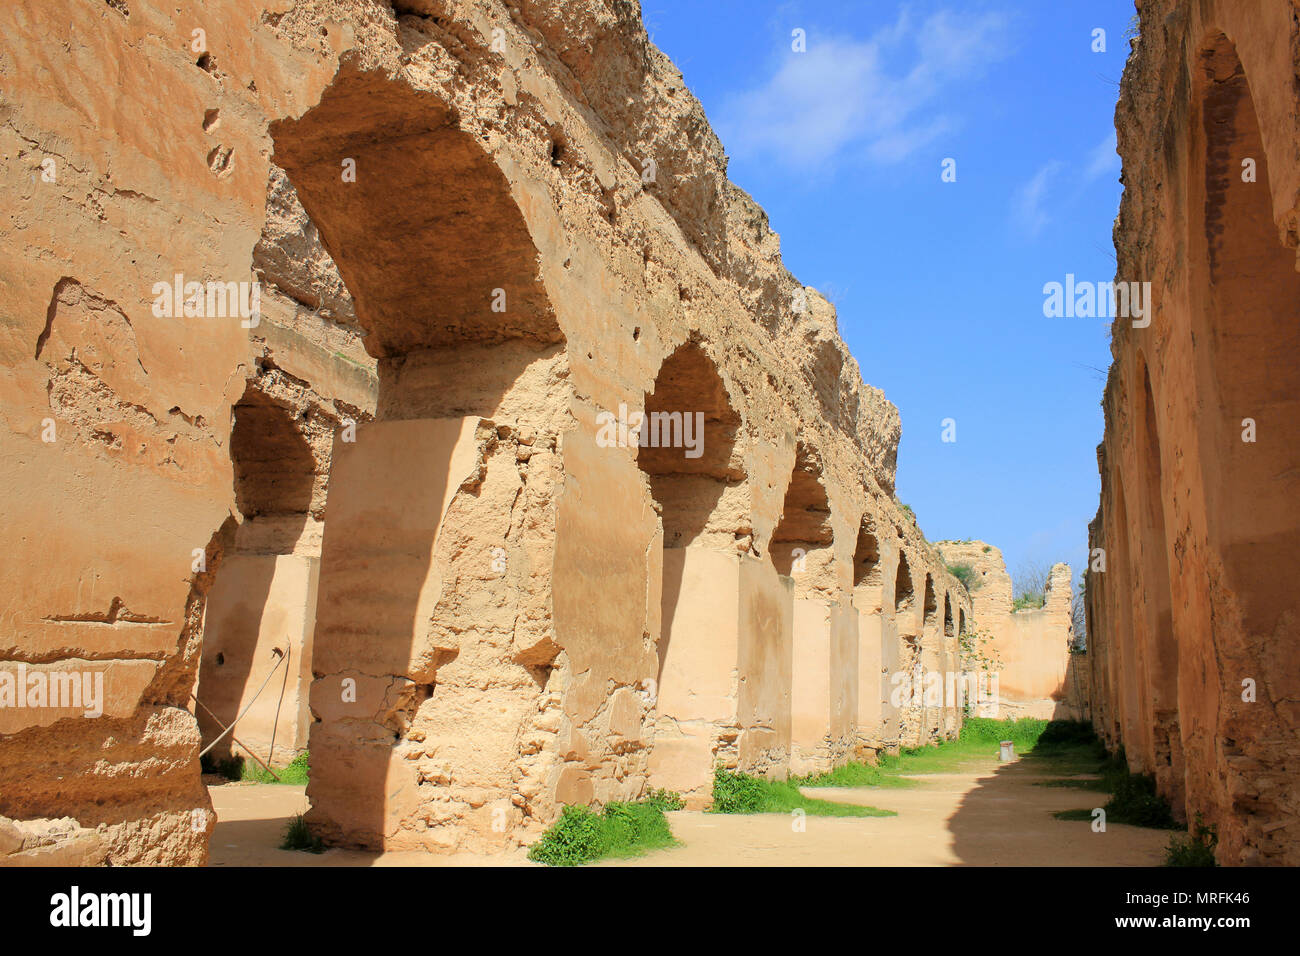 Former Royal Stables of Moulay Ismail, Meknes, Morocco - Stock Image